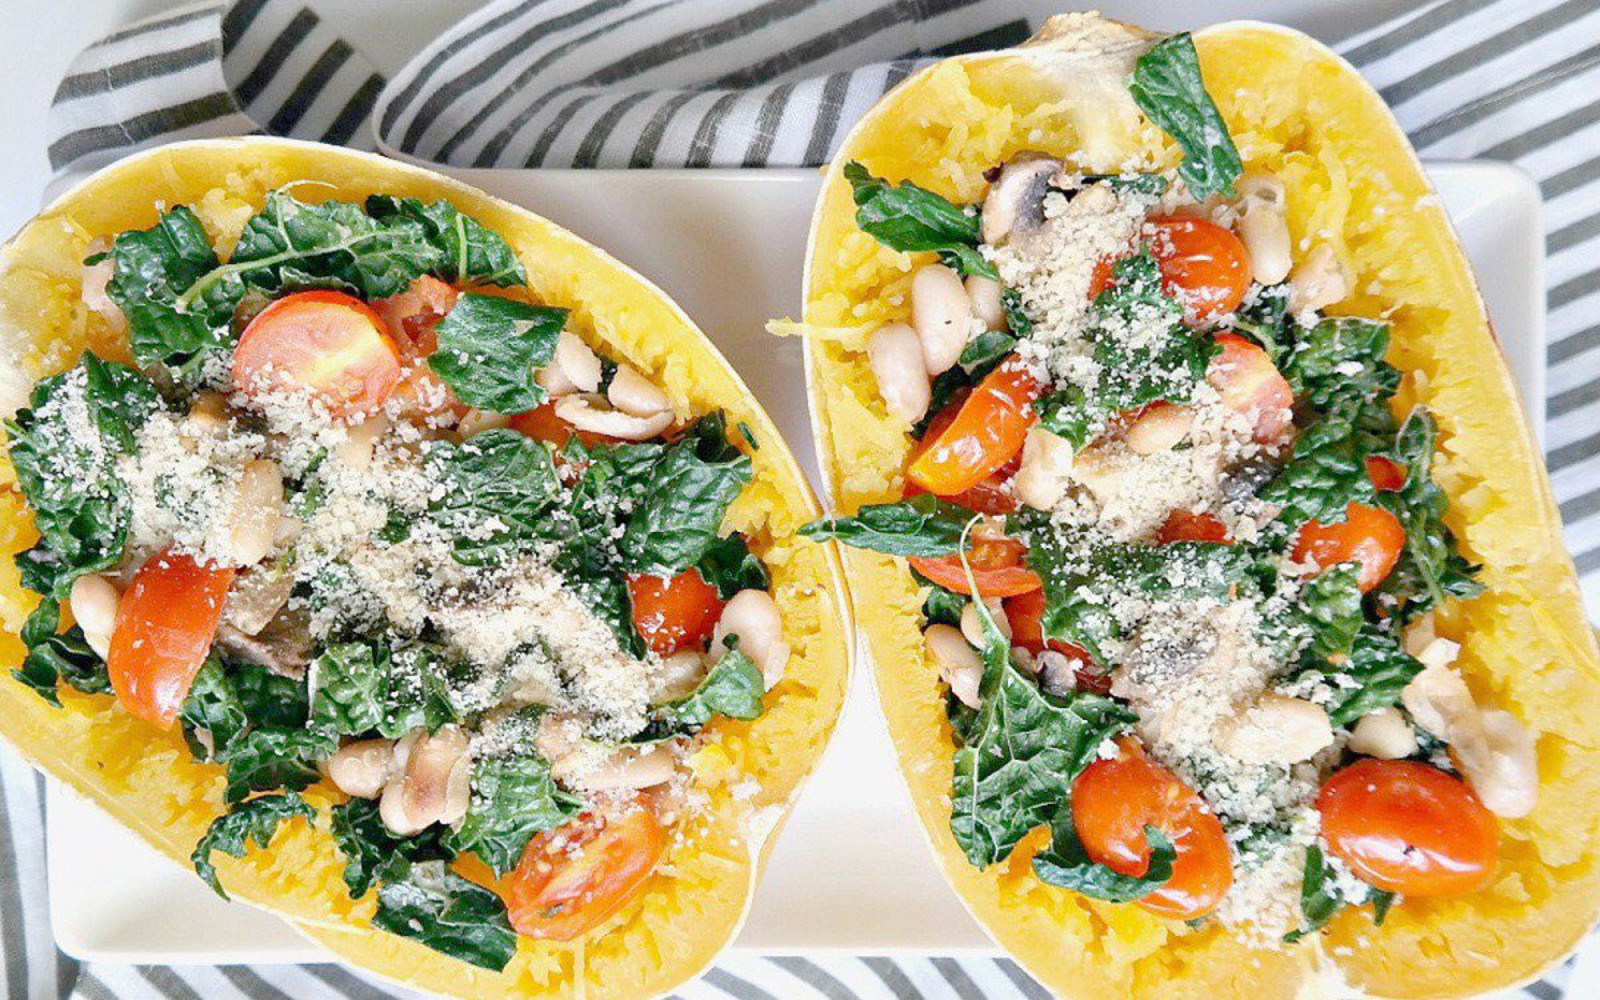 tuscan kale and mushroom stuffed spagehtti squash